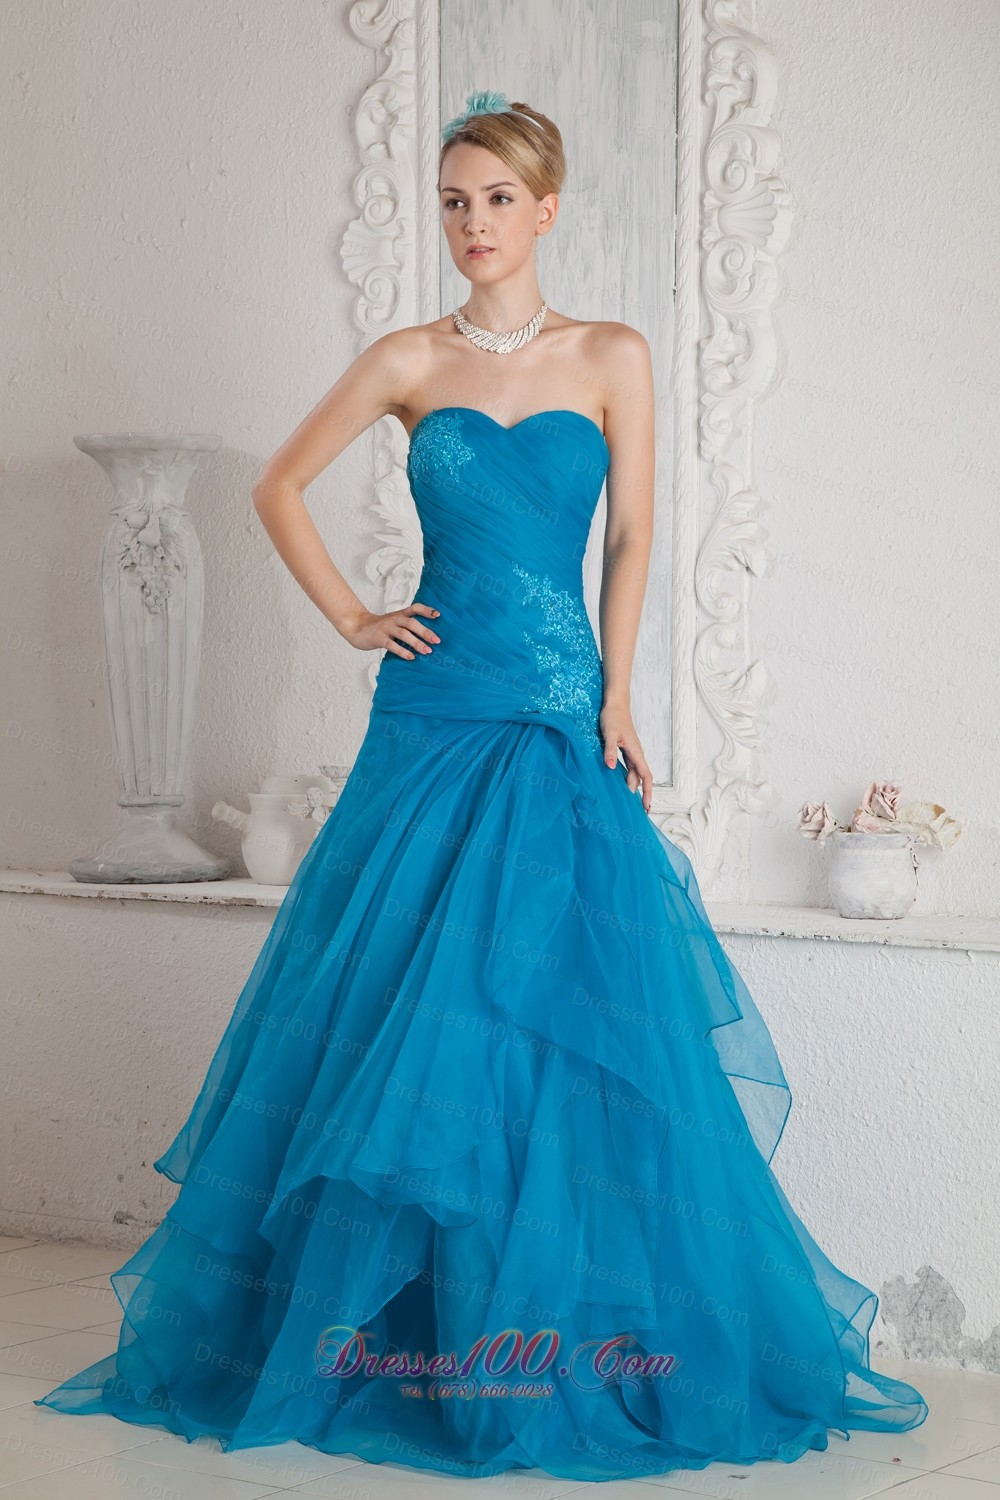 Teal Color Prom Dresses - Prom Dresses Cheap